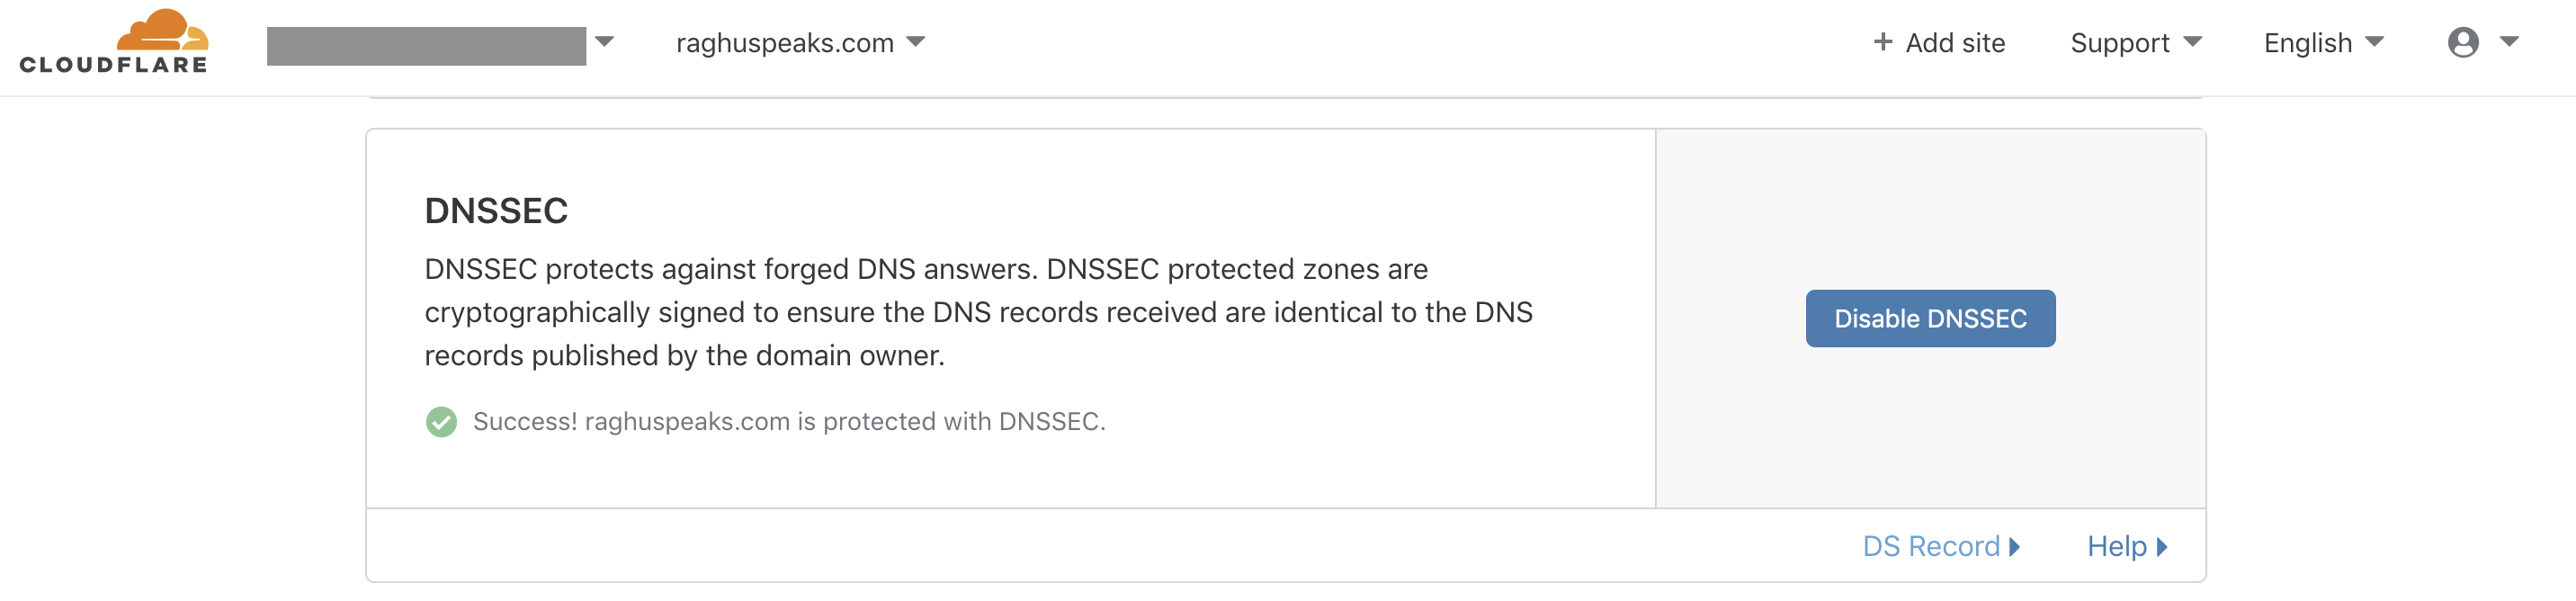 DNSSEC-enabled-cloudflare